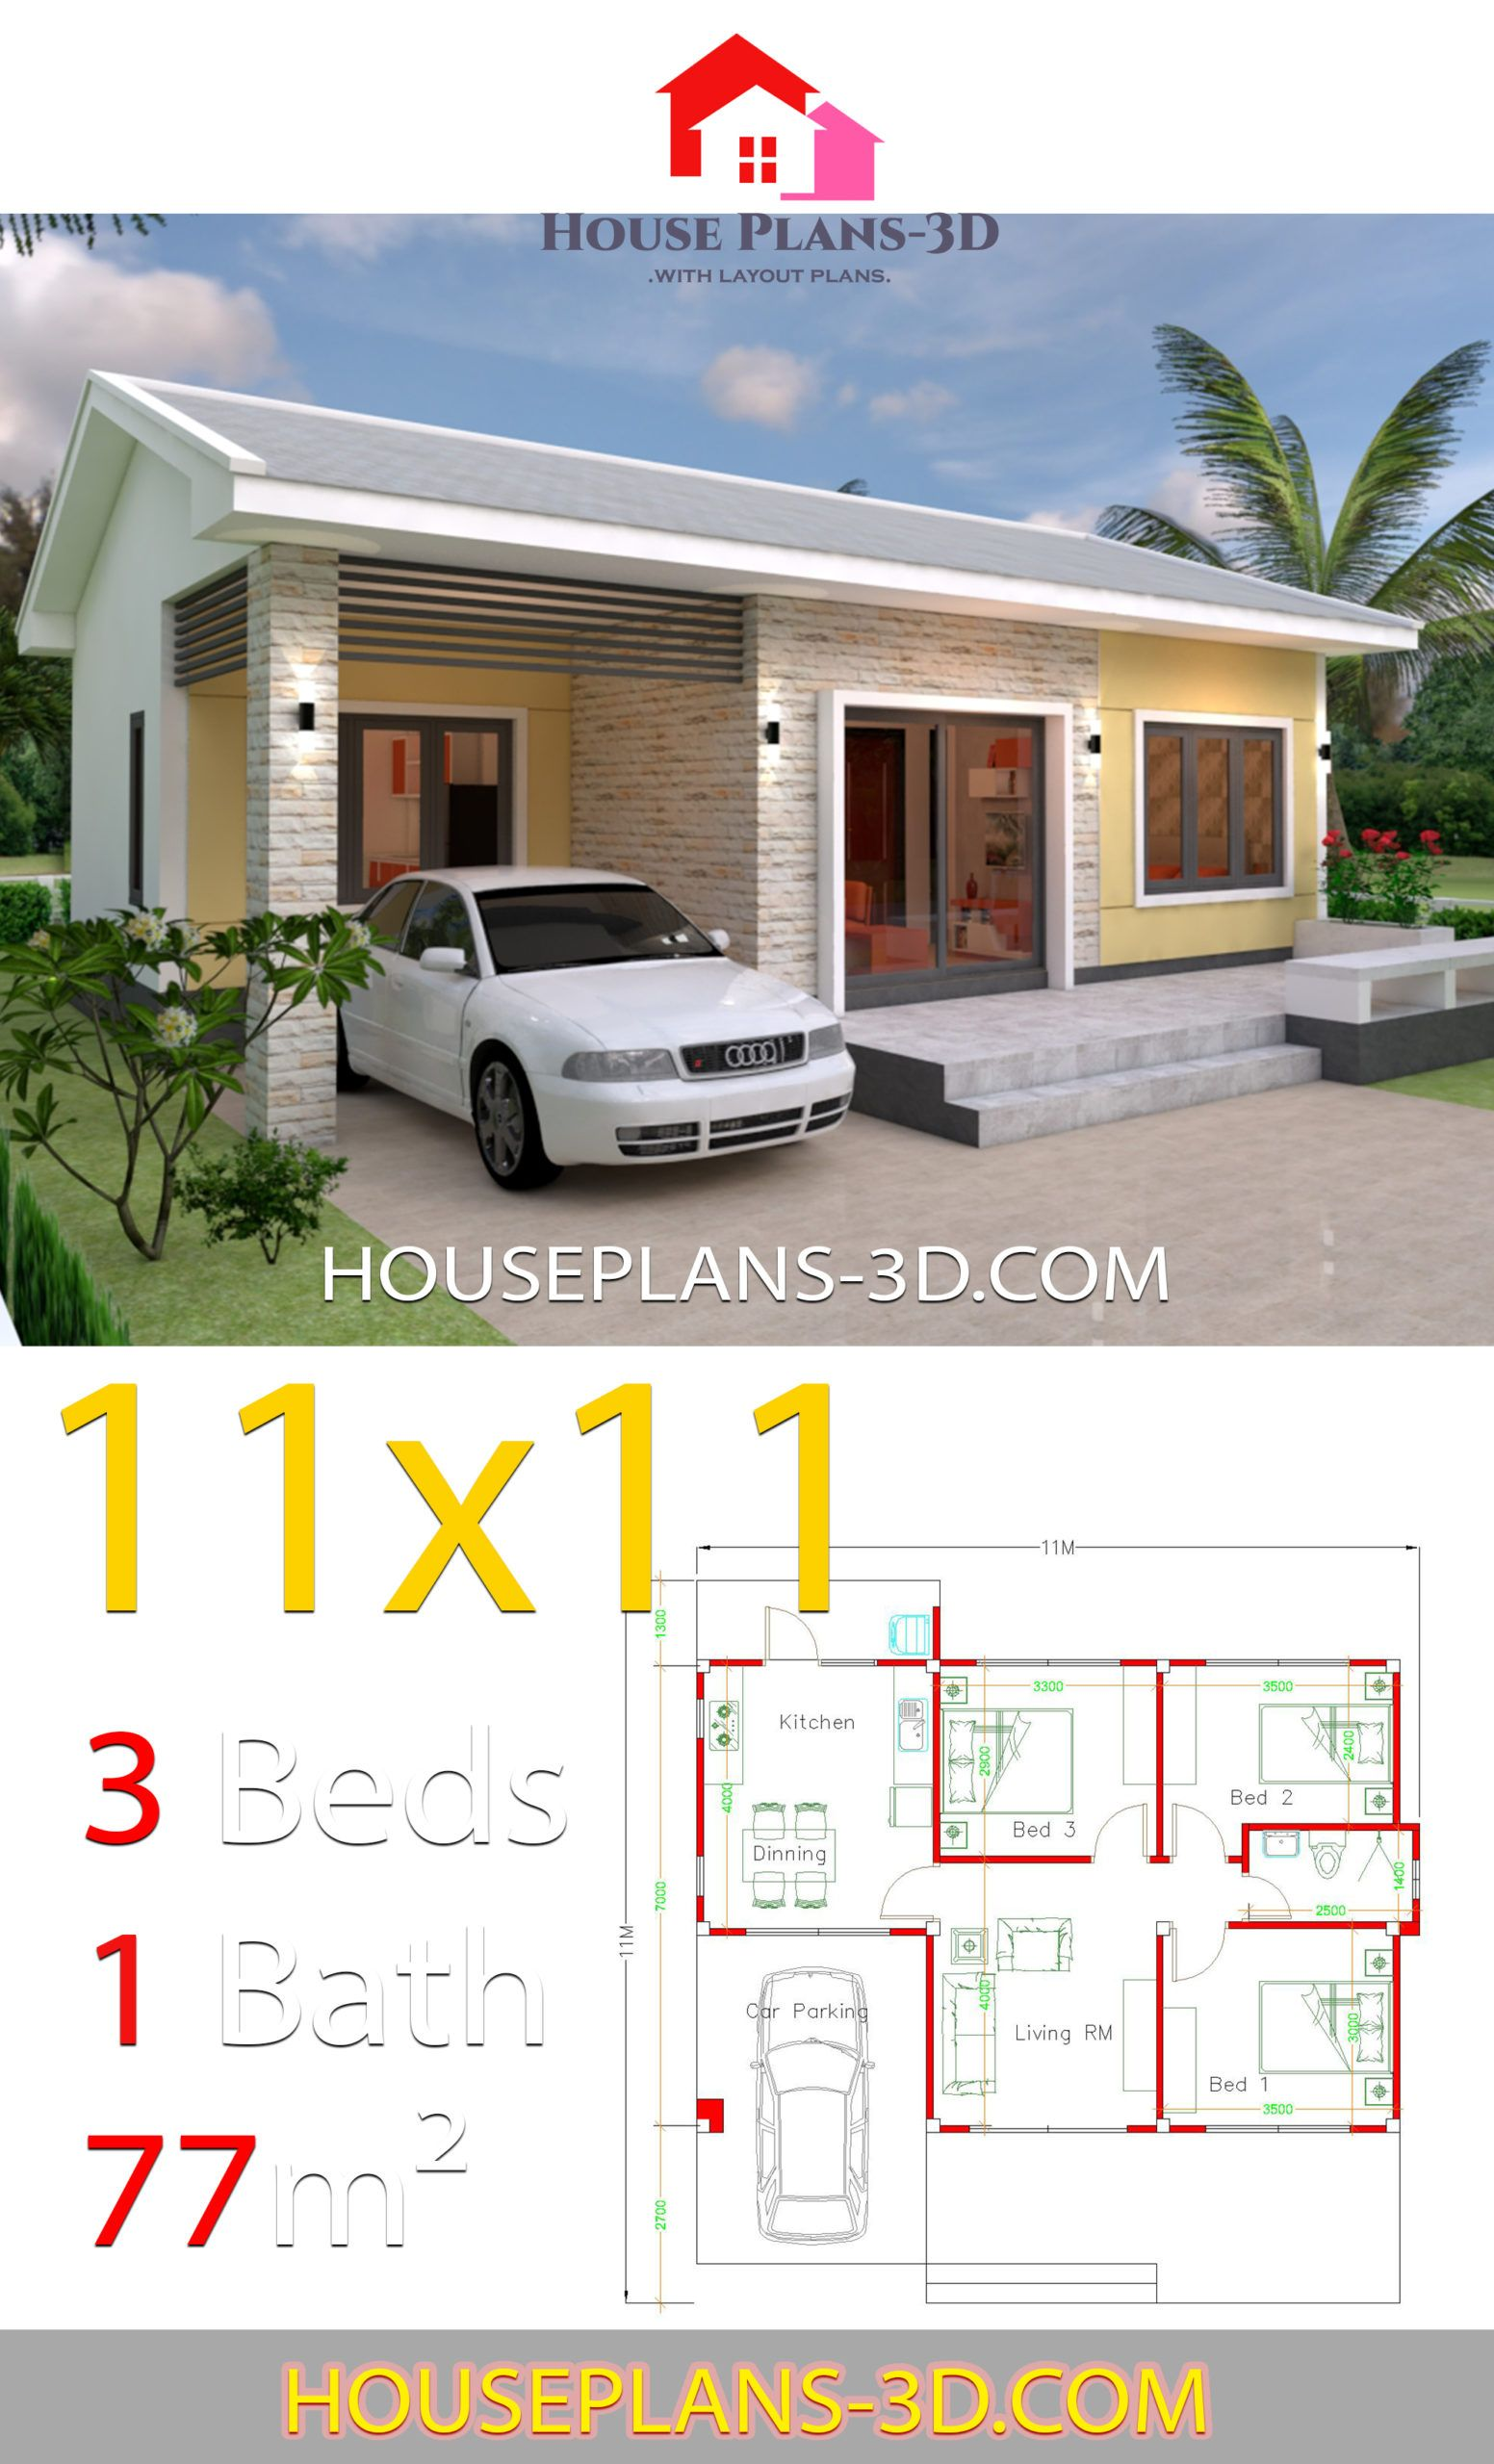 Simple House Design Plans 11x11 With 3 Bedrooms House Plans 3d